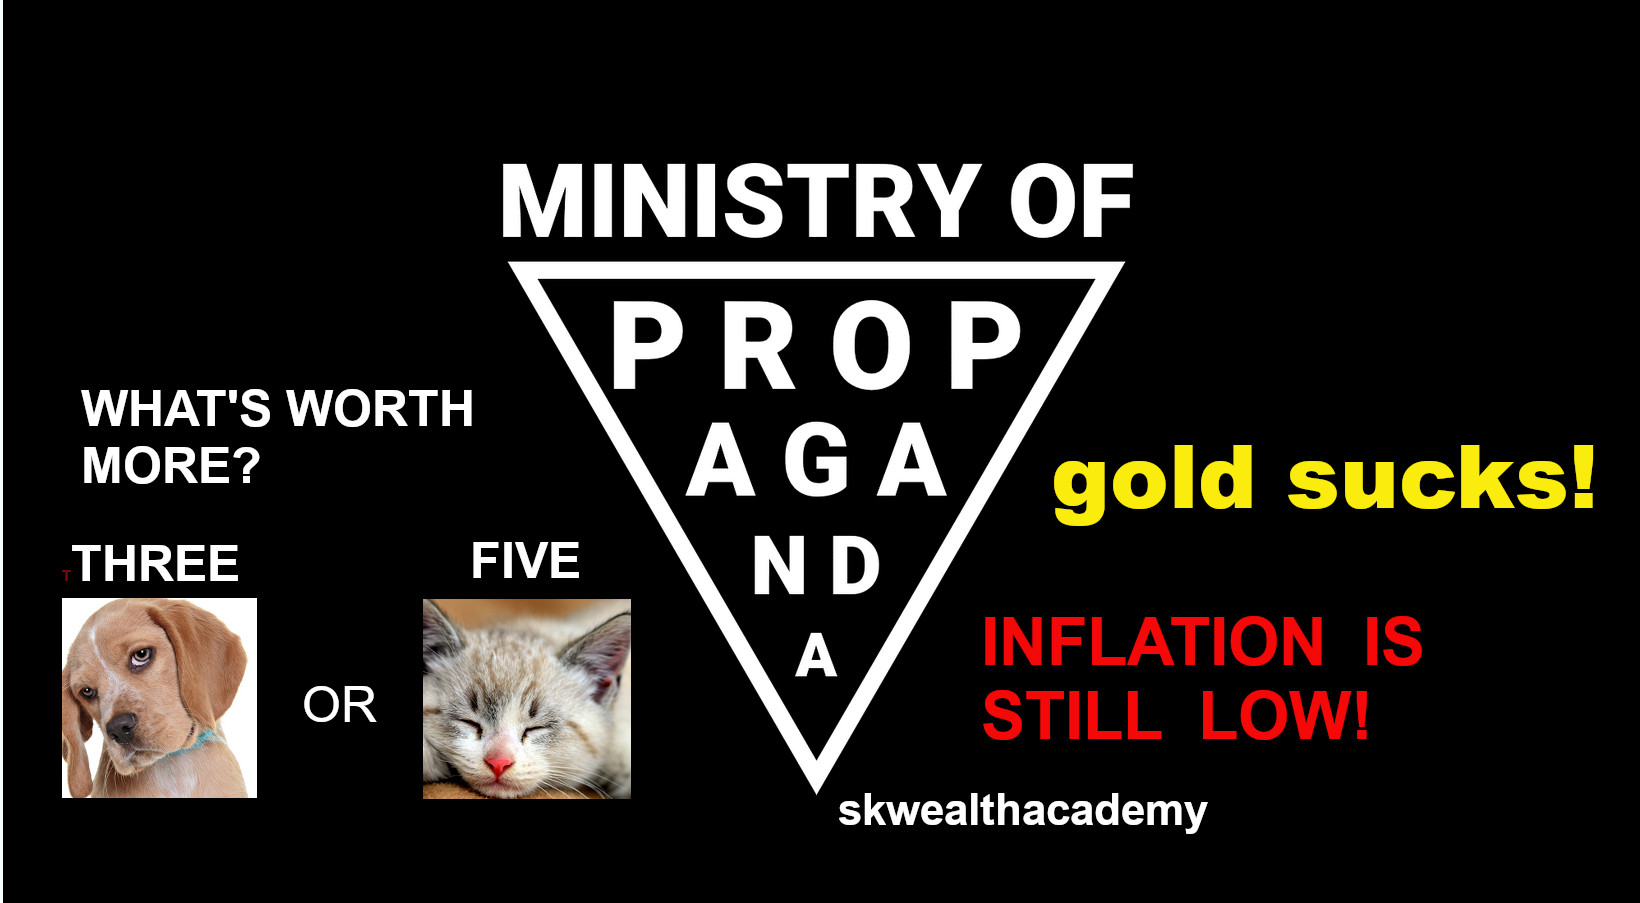 propaganda always states gold is not an inflation hedge